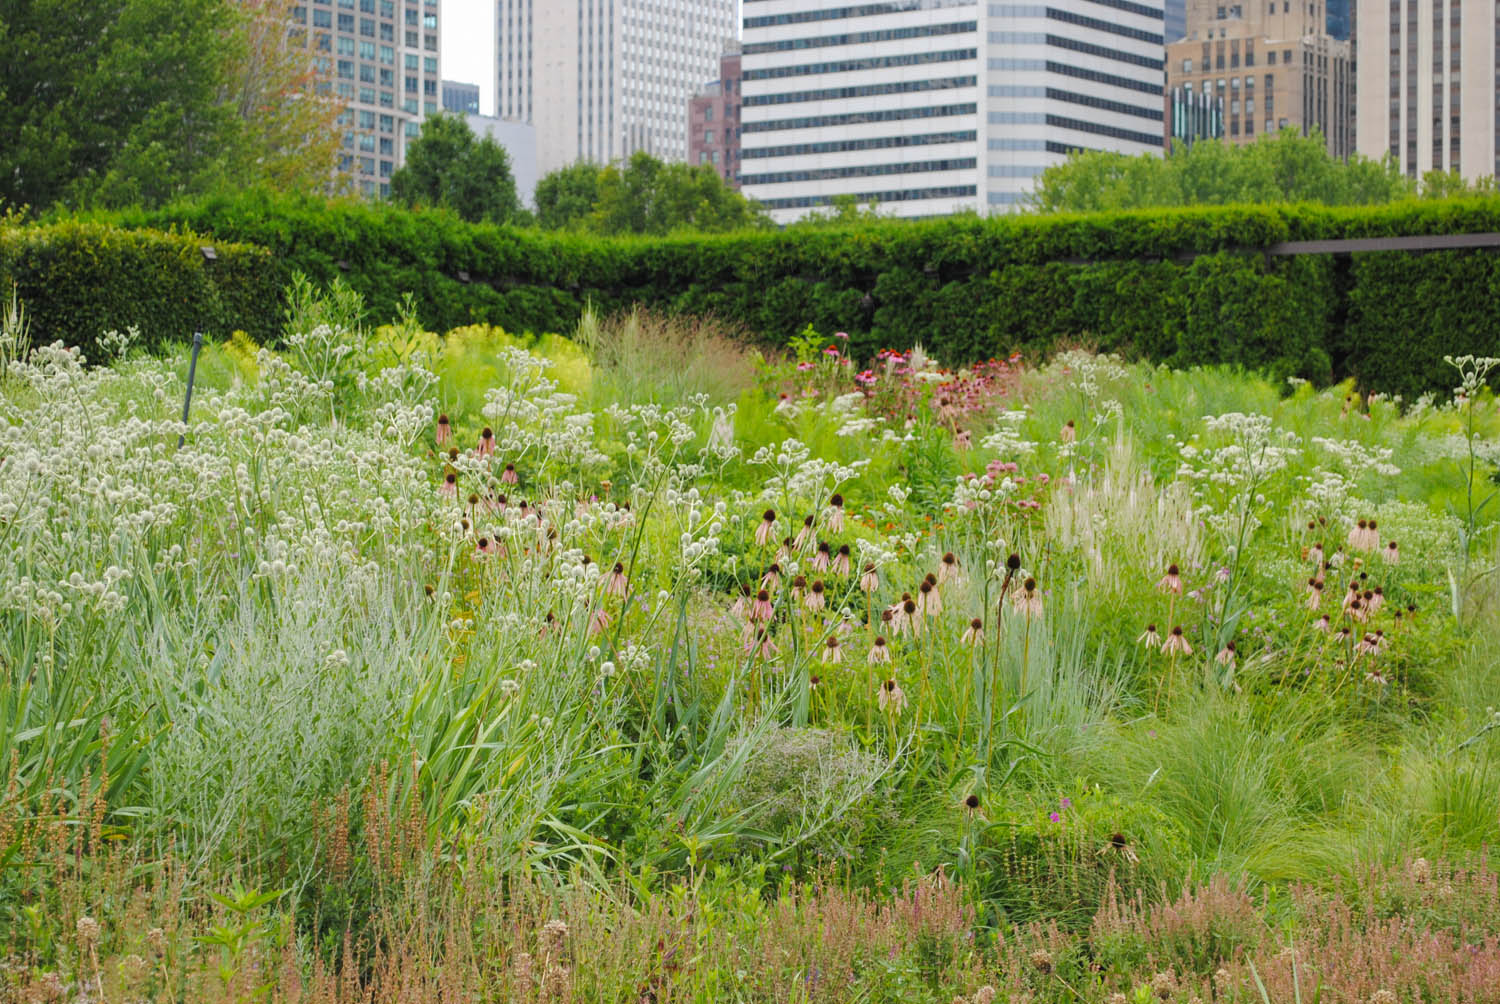 In the lower right you can spy some tussocks of  Sporobolus heterolepis  amongst the perennials.